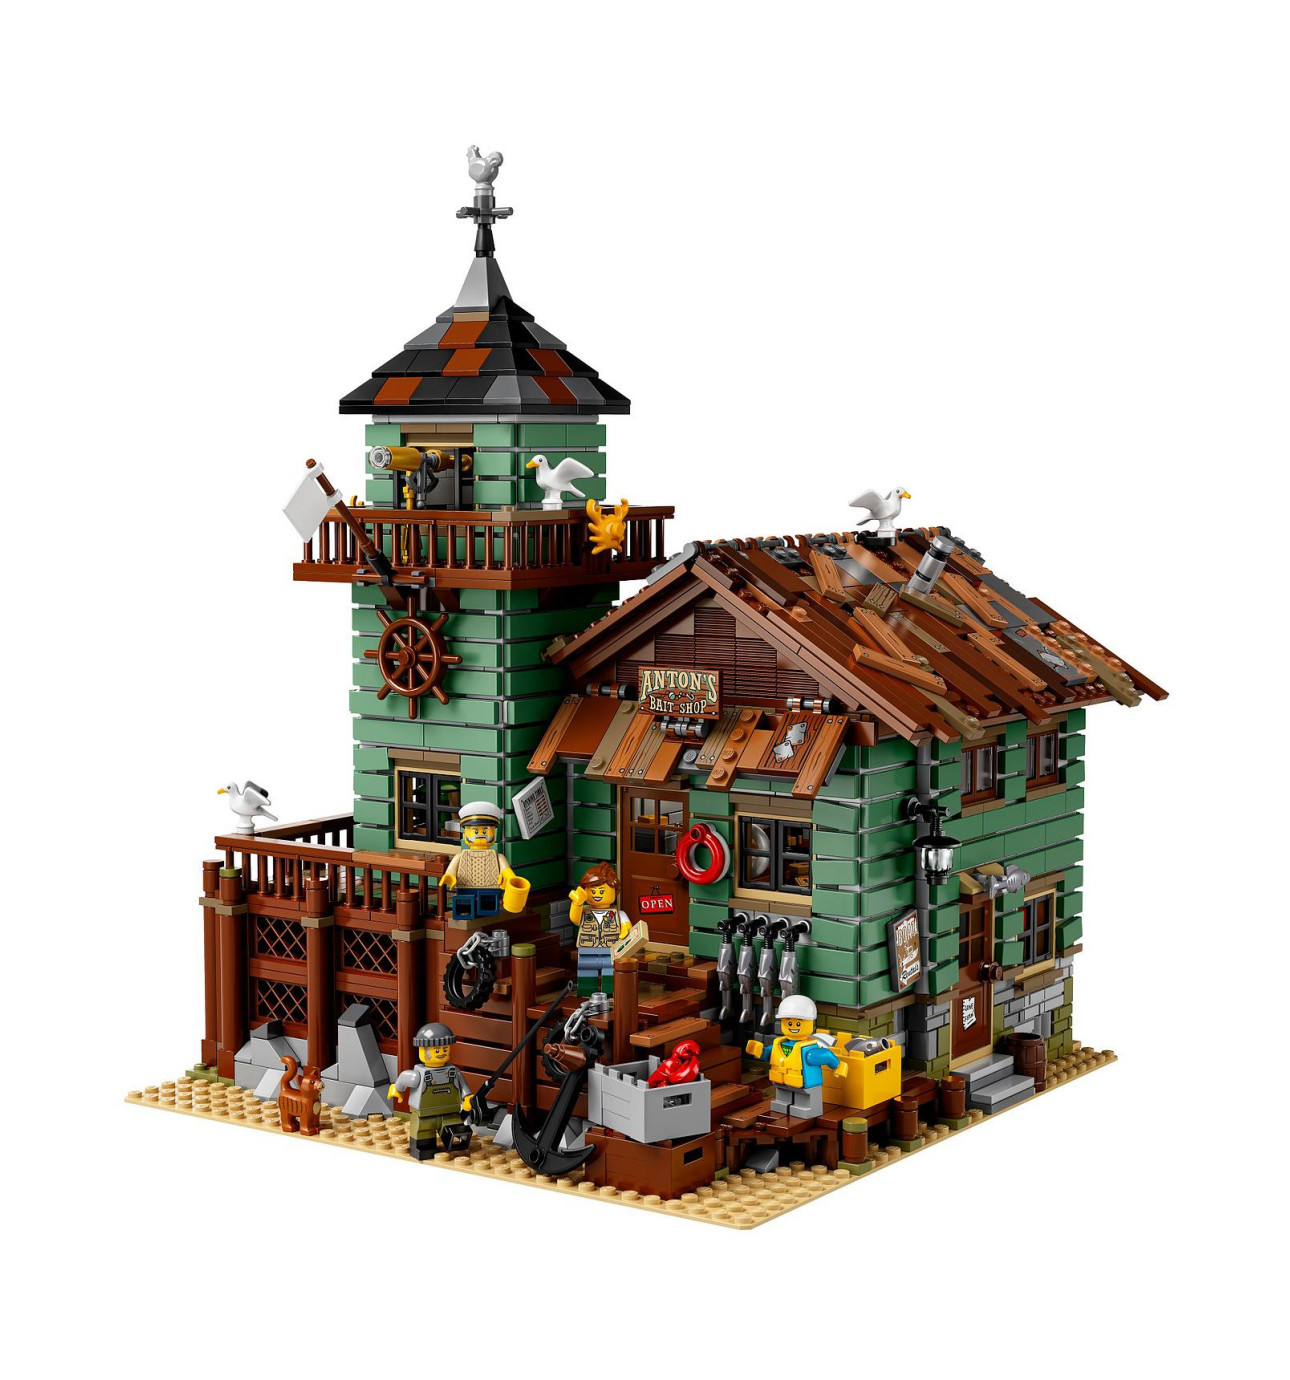 Lego shop lego games city architecture online at david jones lego negle Gallery